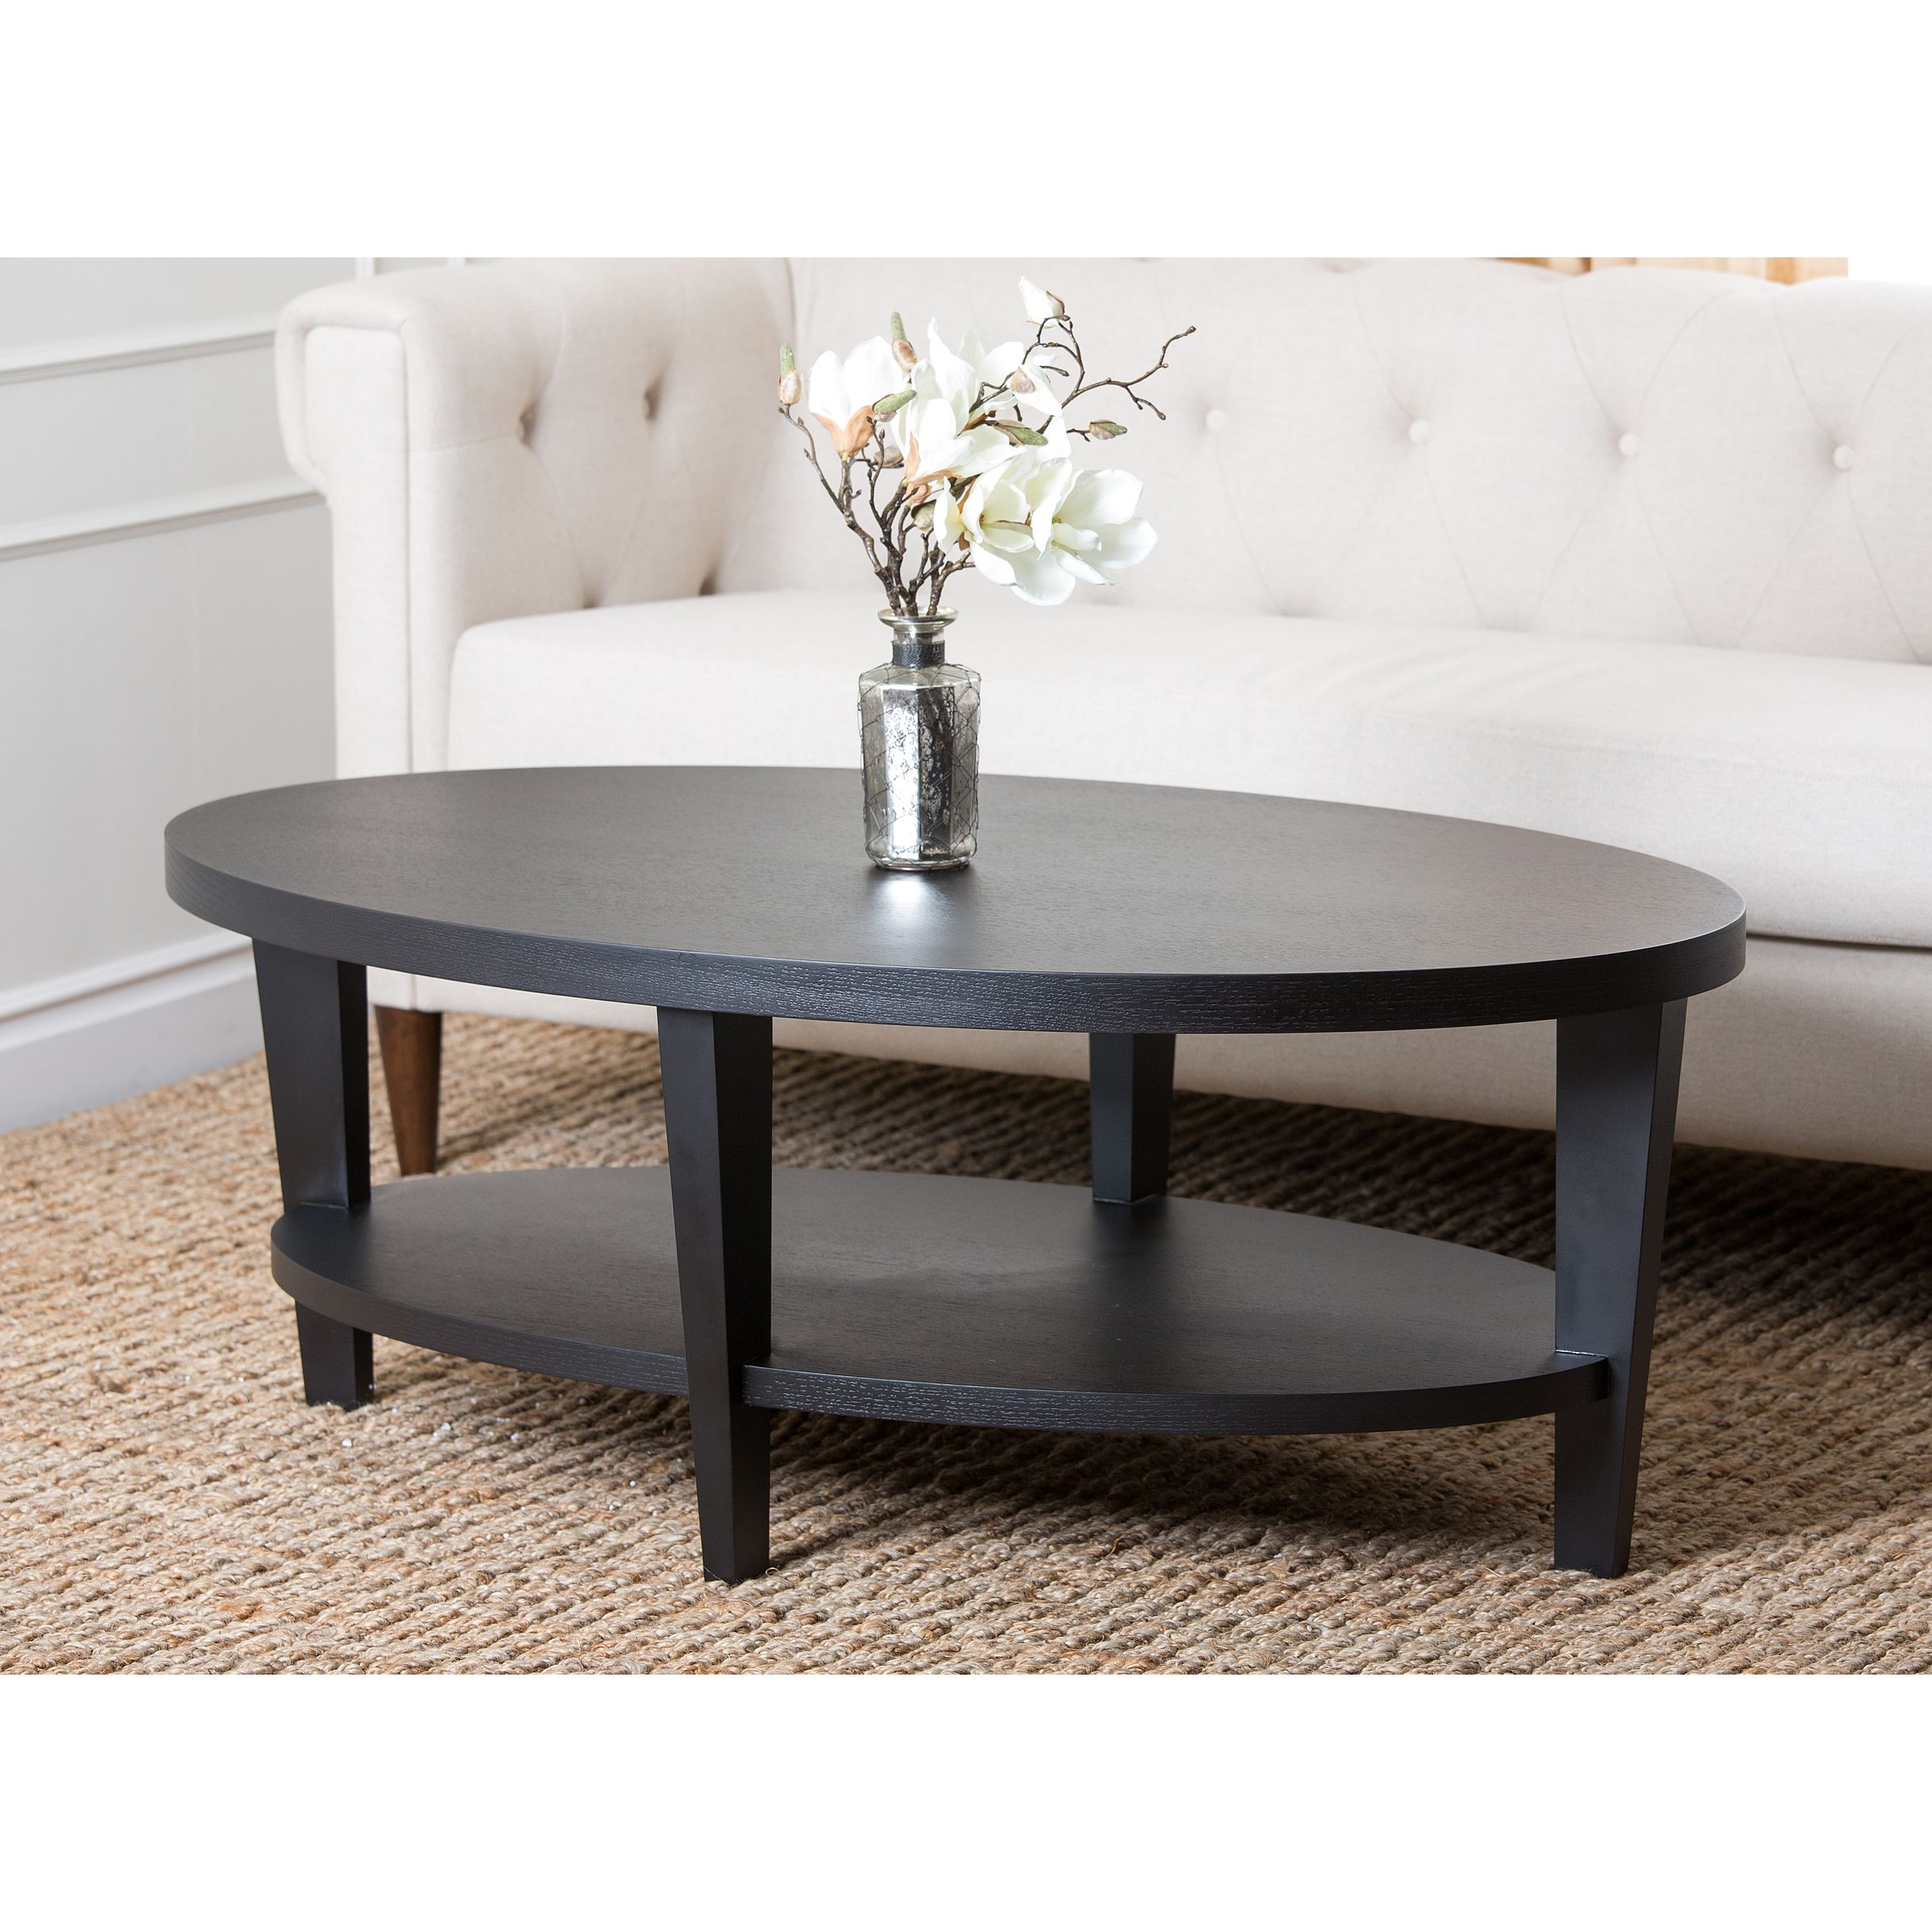 Our Best Living Room Furniture Deals Coffee Table Oval Wood Coffee Table Coffee Table Wood [ 2432 x 2432 Pixel ]